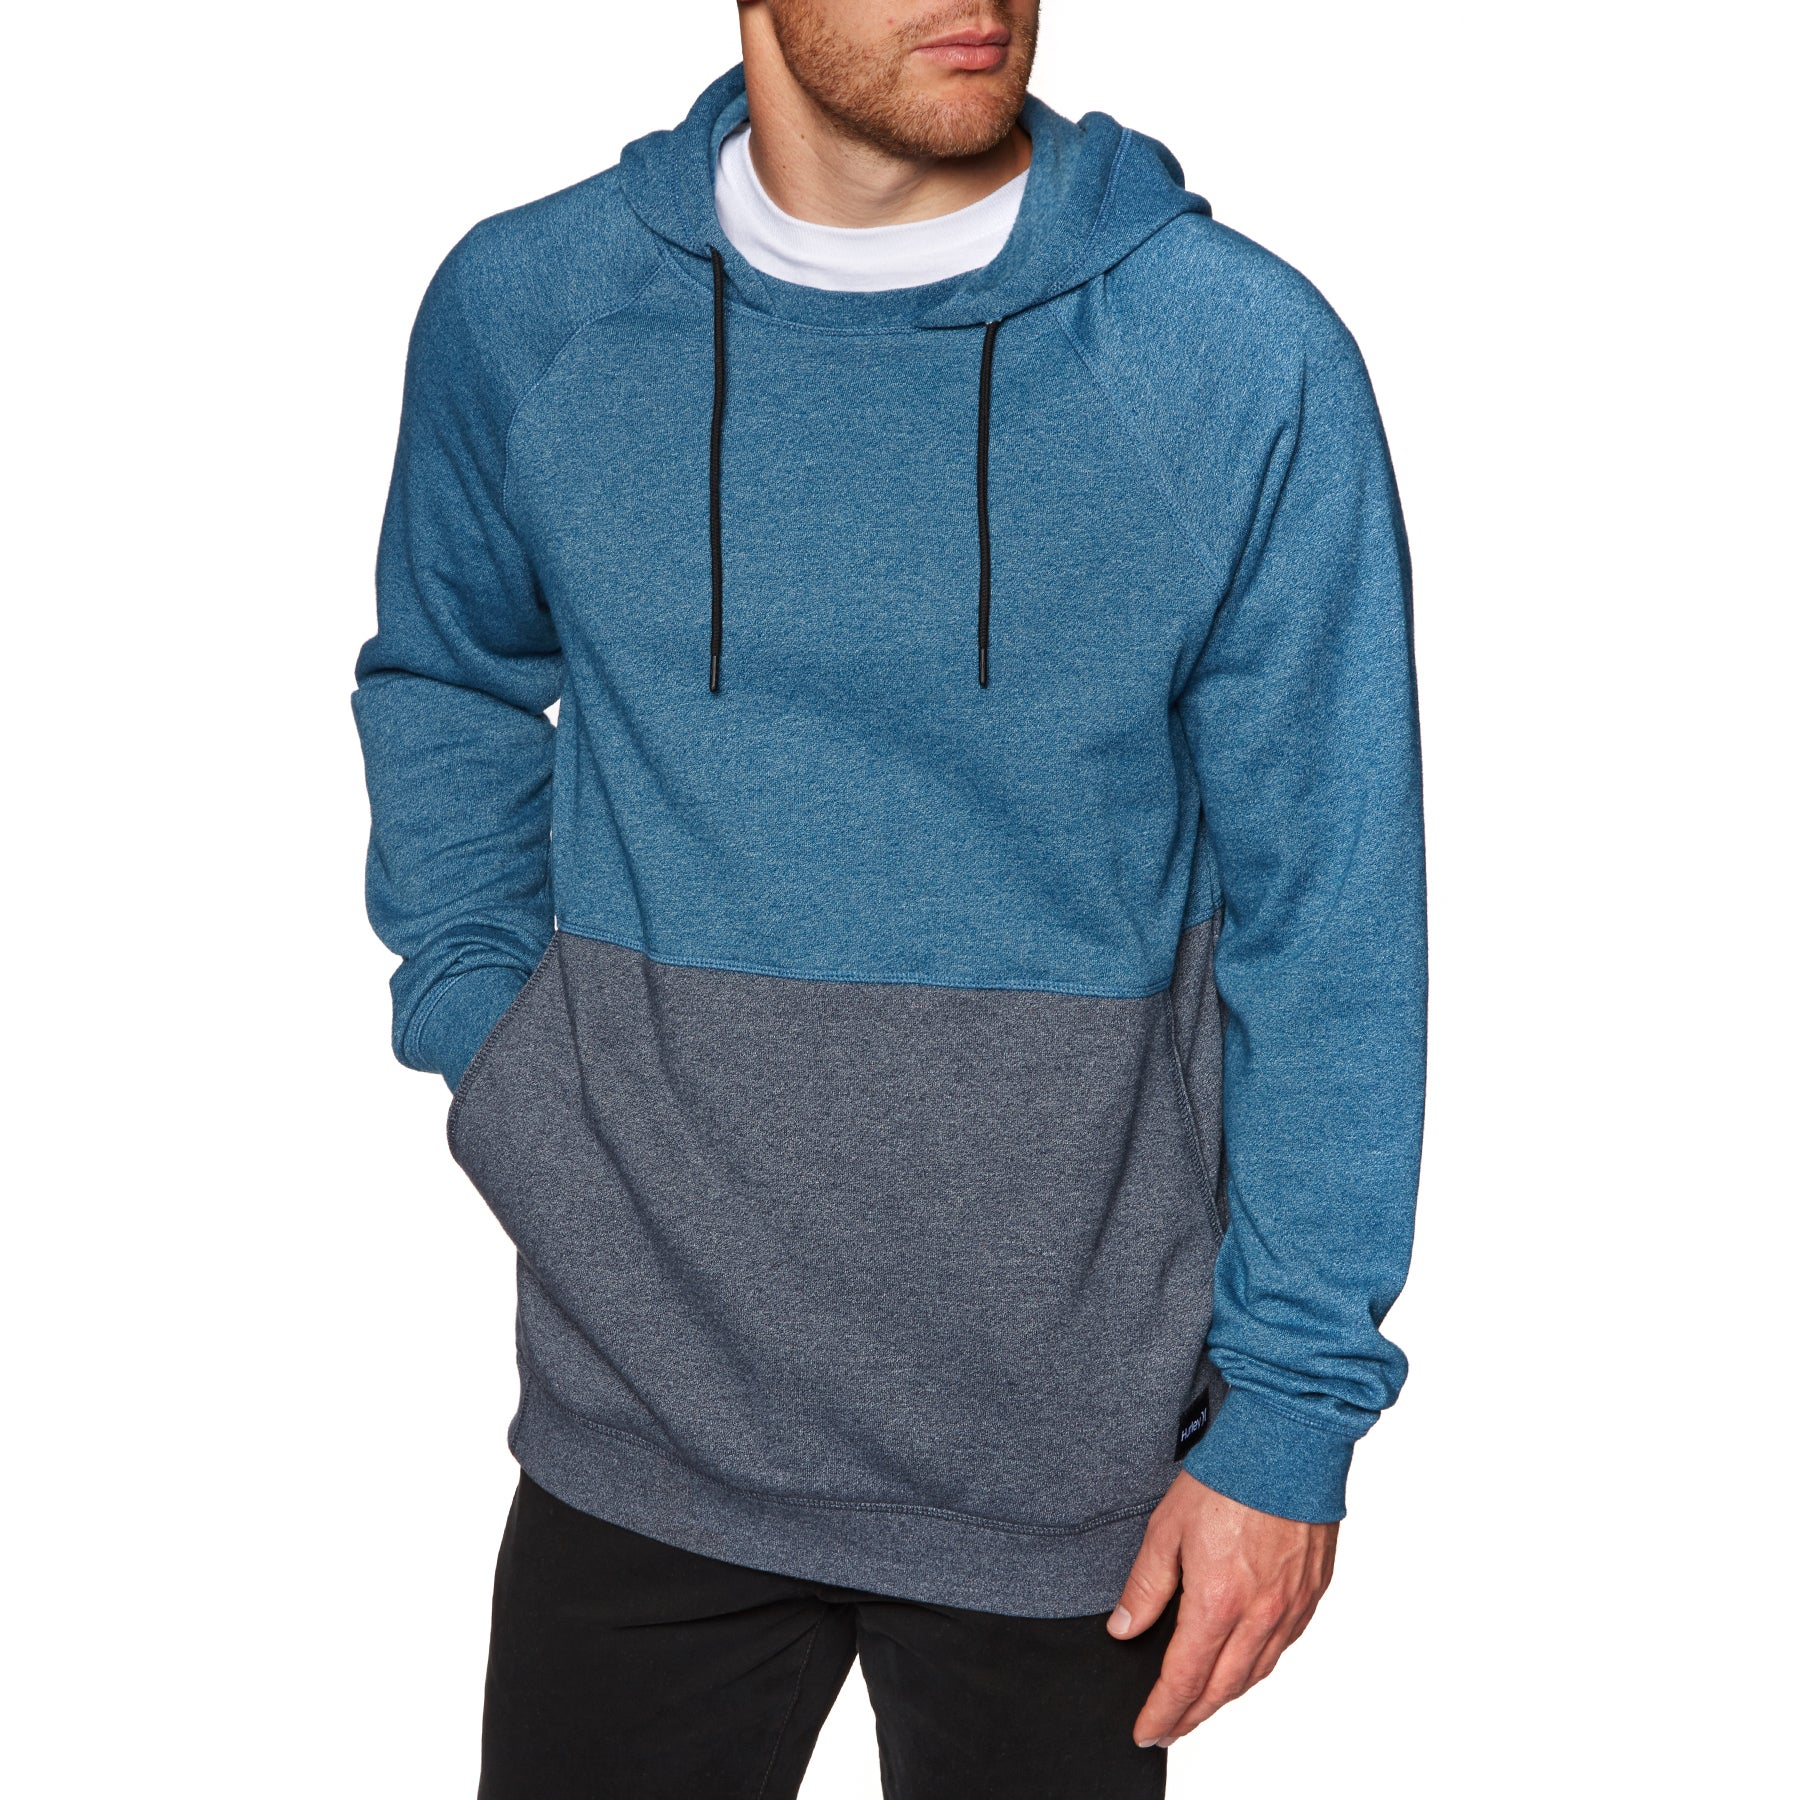 Hurley Crone Blocked Pullover Hoody - Blue Force Htr